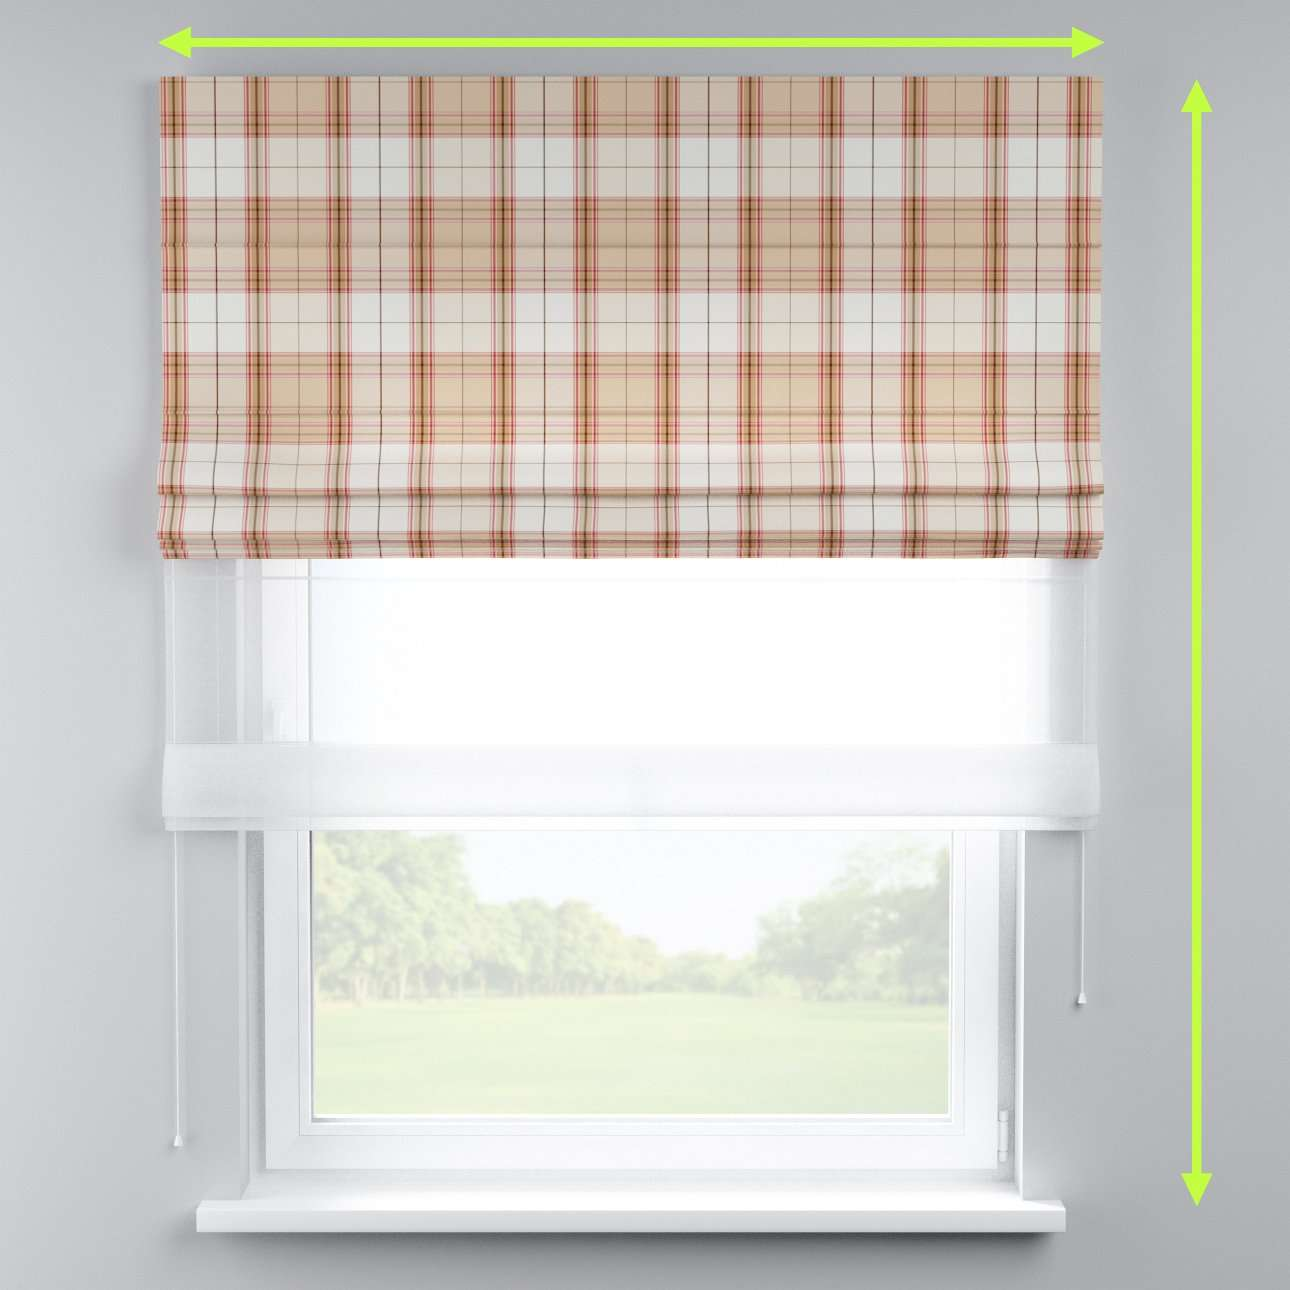 Voile and fabric roman blind (DUO II) in collection Bristol, fabric: 125-09